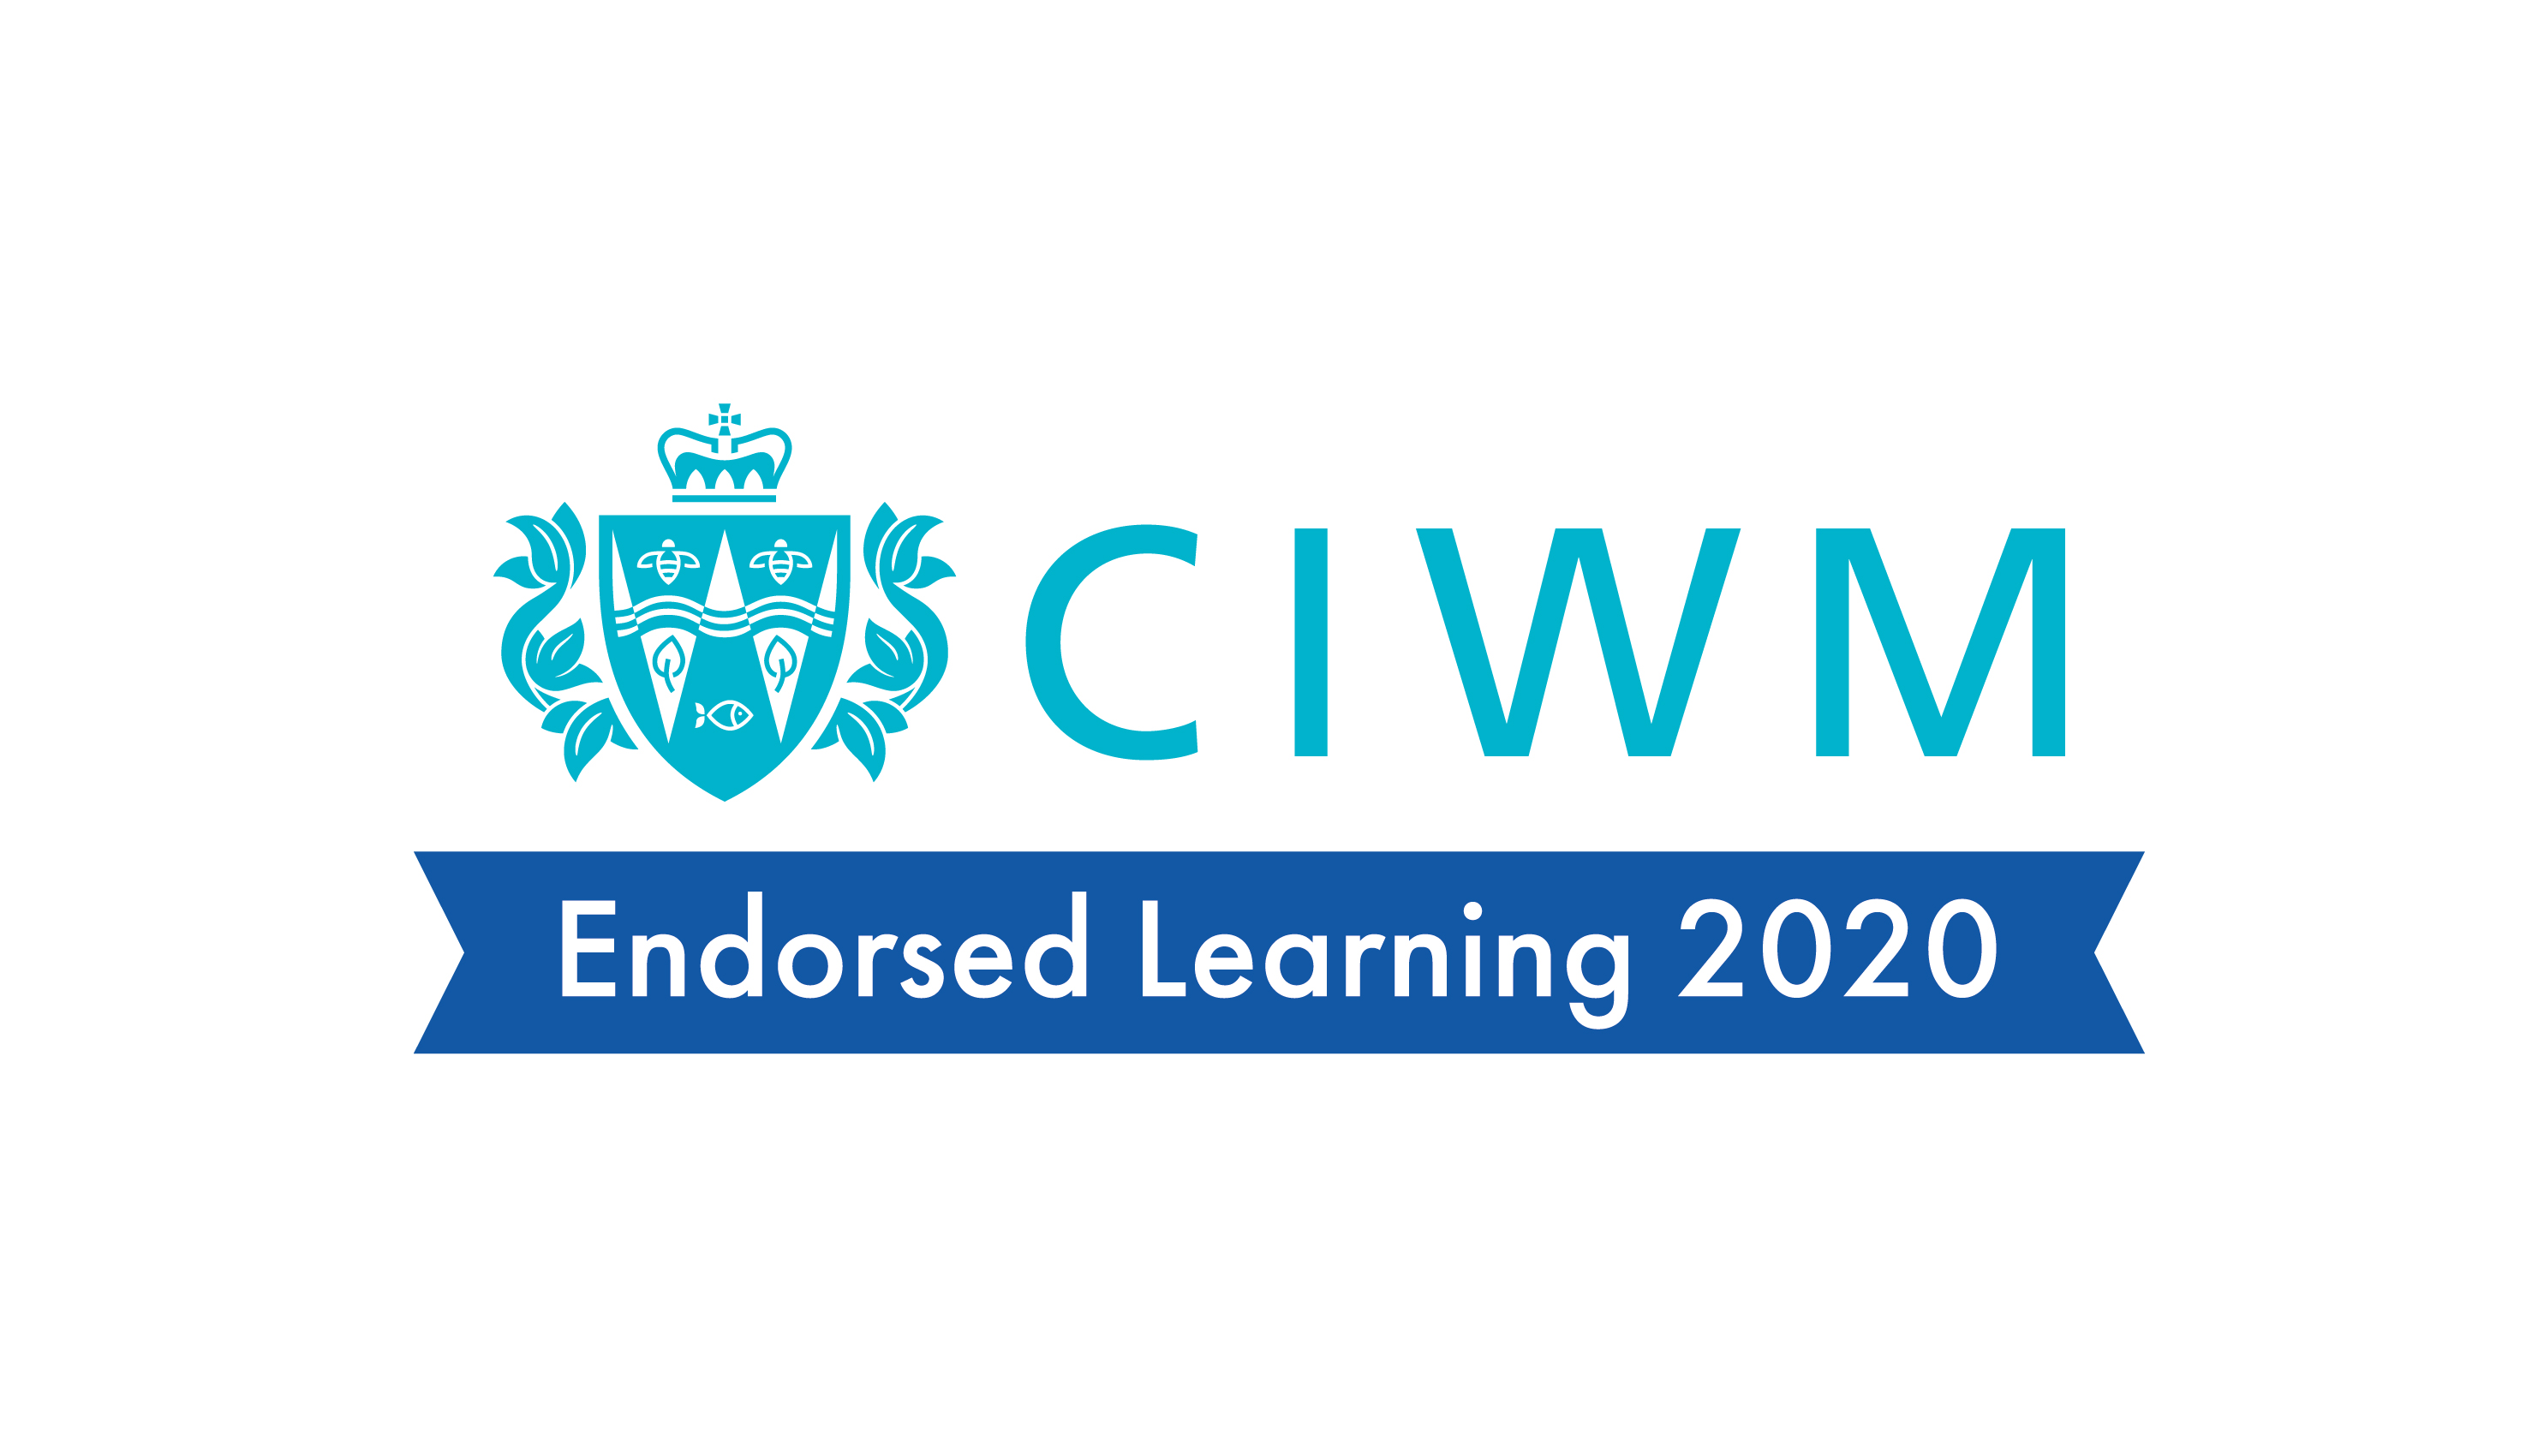 CIWM logo showing endorsement of course for 2020